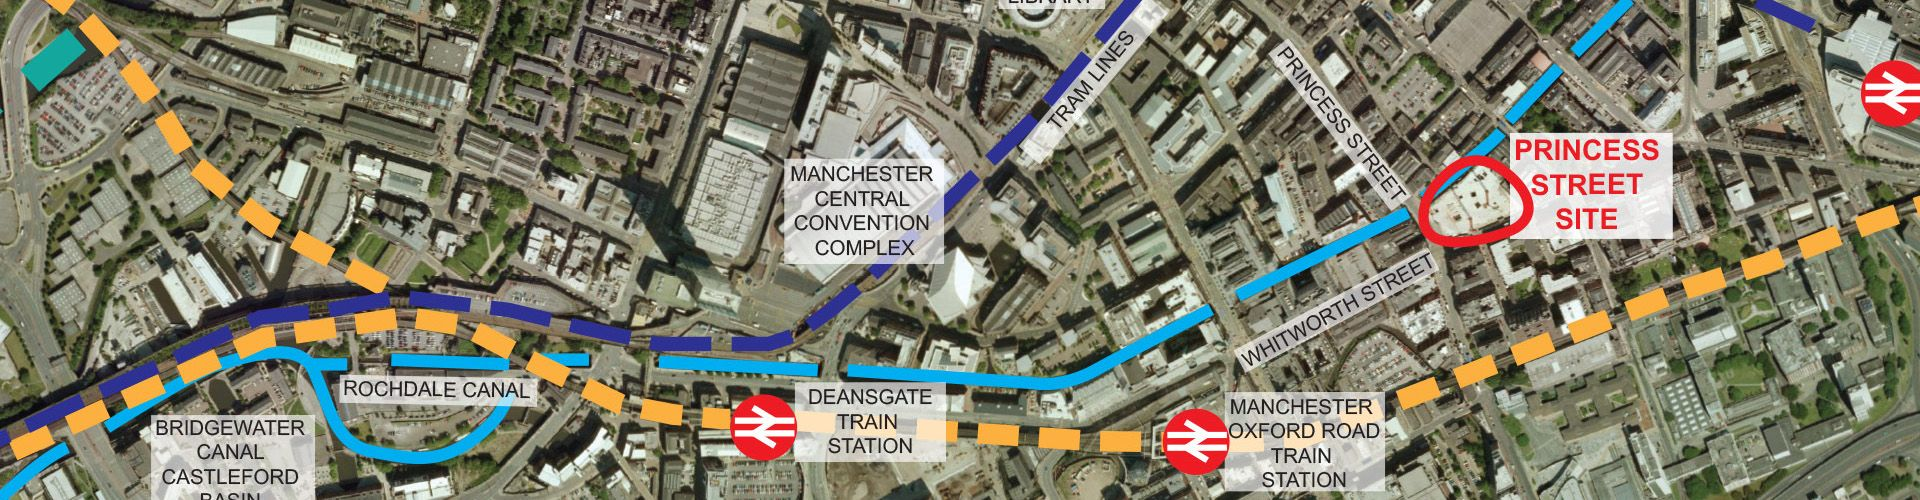 12.12.14_Urban&Civic secure two key Manchester projects.jpg